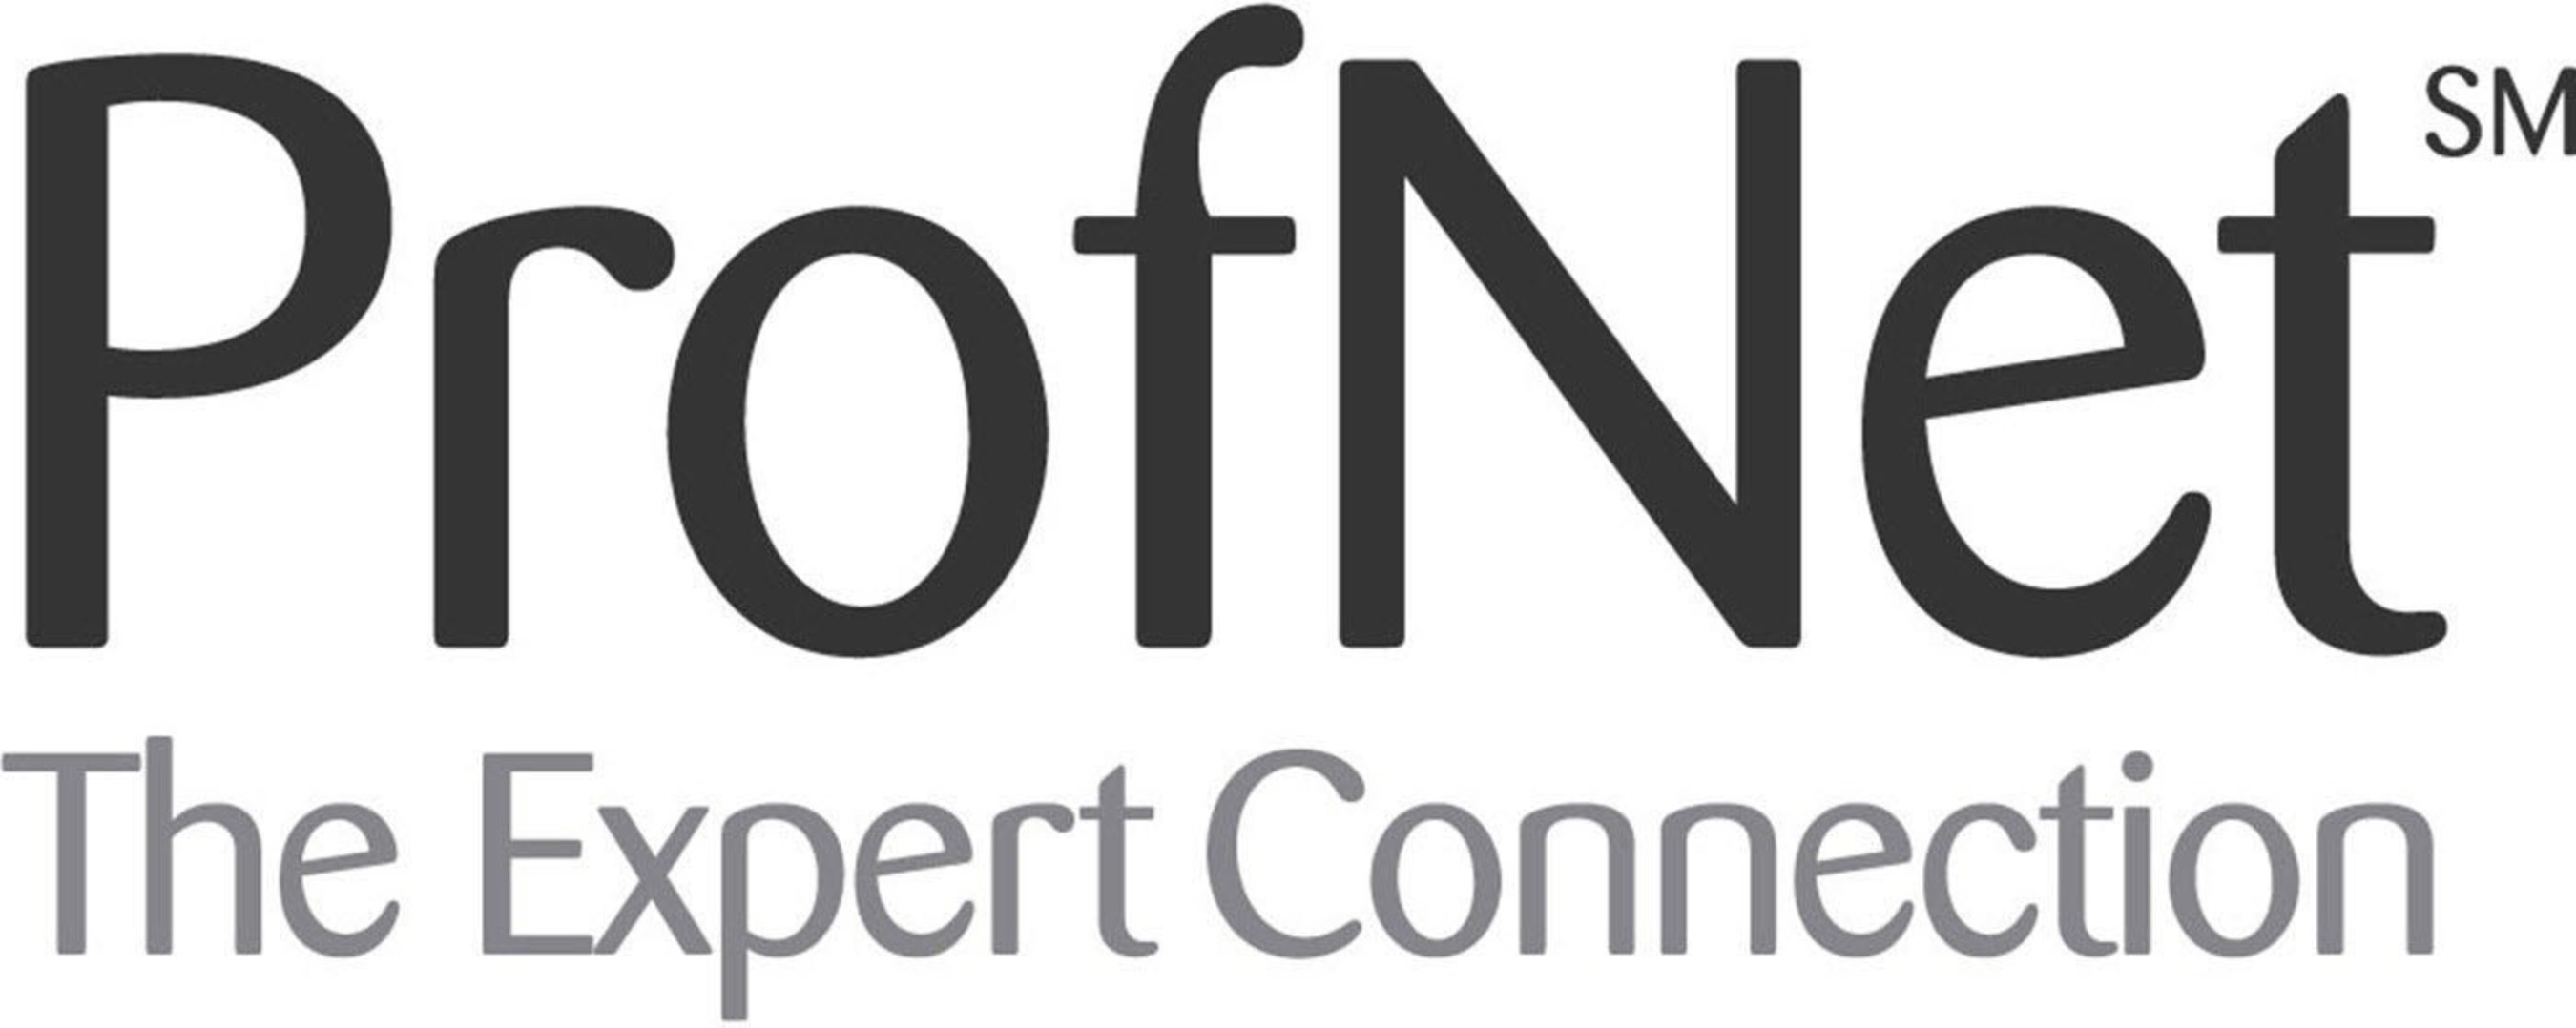 ProfNet is a service that connects journalists with subject matter experts. Find out more at http://www.profnet.com.